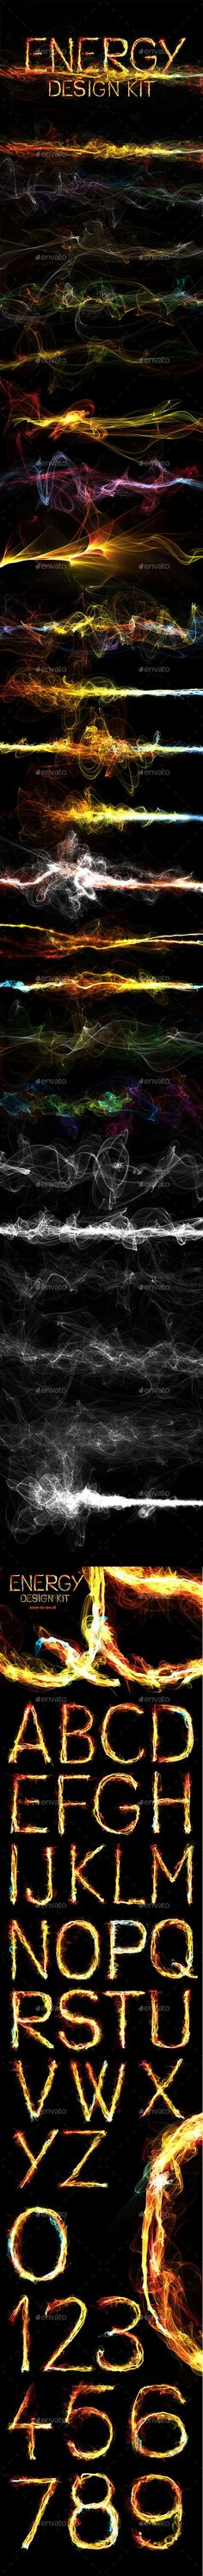 Energy Design Kit  #abstract #backgrounds #design • Click here to download ! http://graphicriver.net/item/energy-design-kit/15995144?ref=pxcr